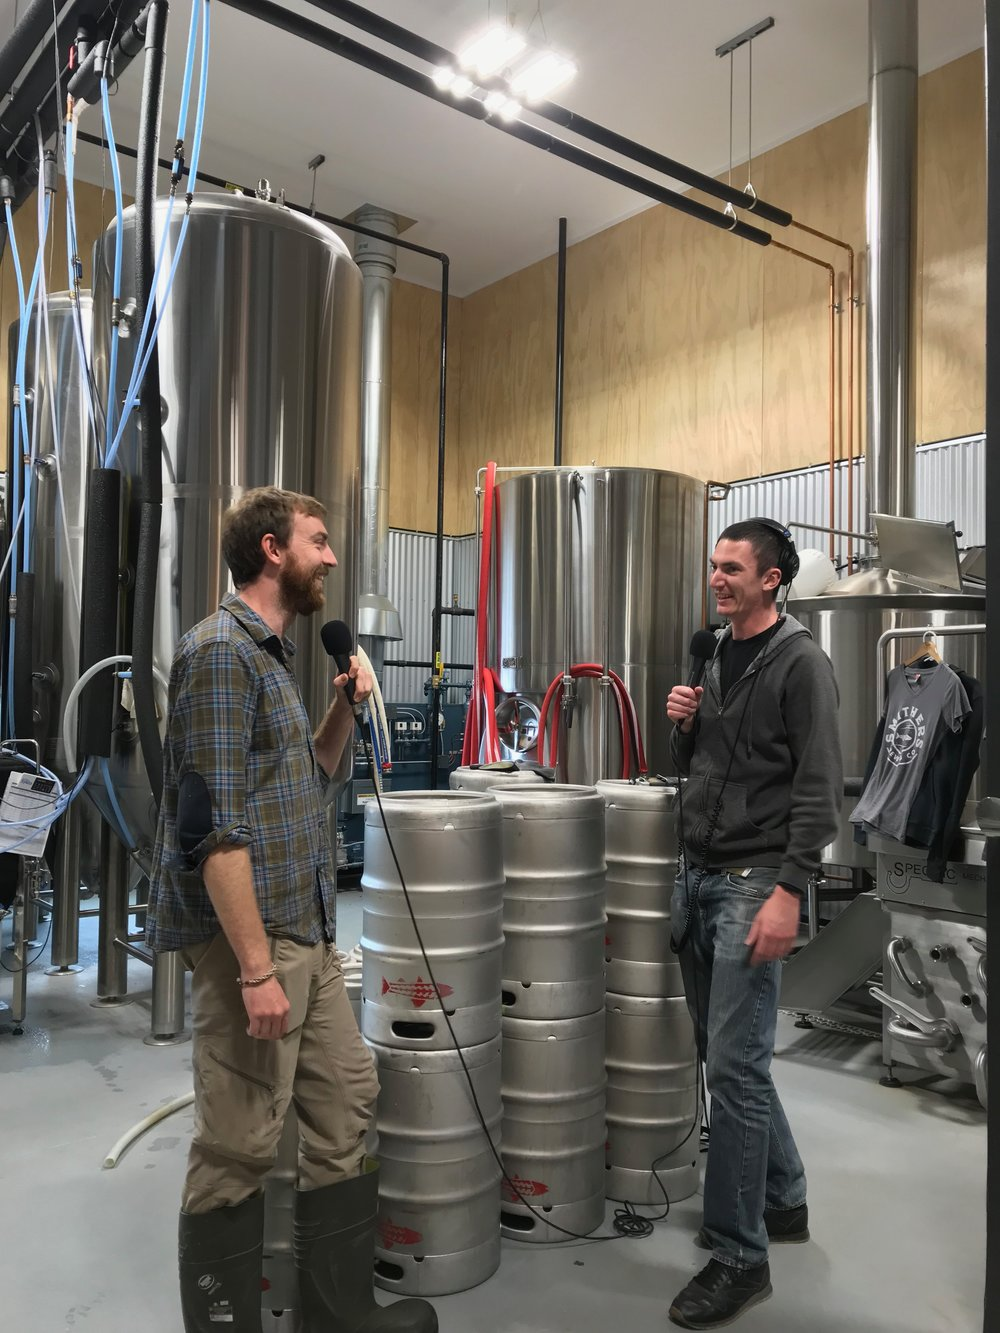 We recorded our chat in the brewhouse.